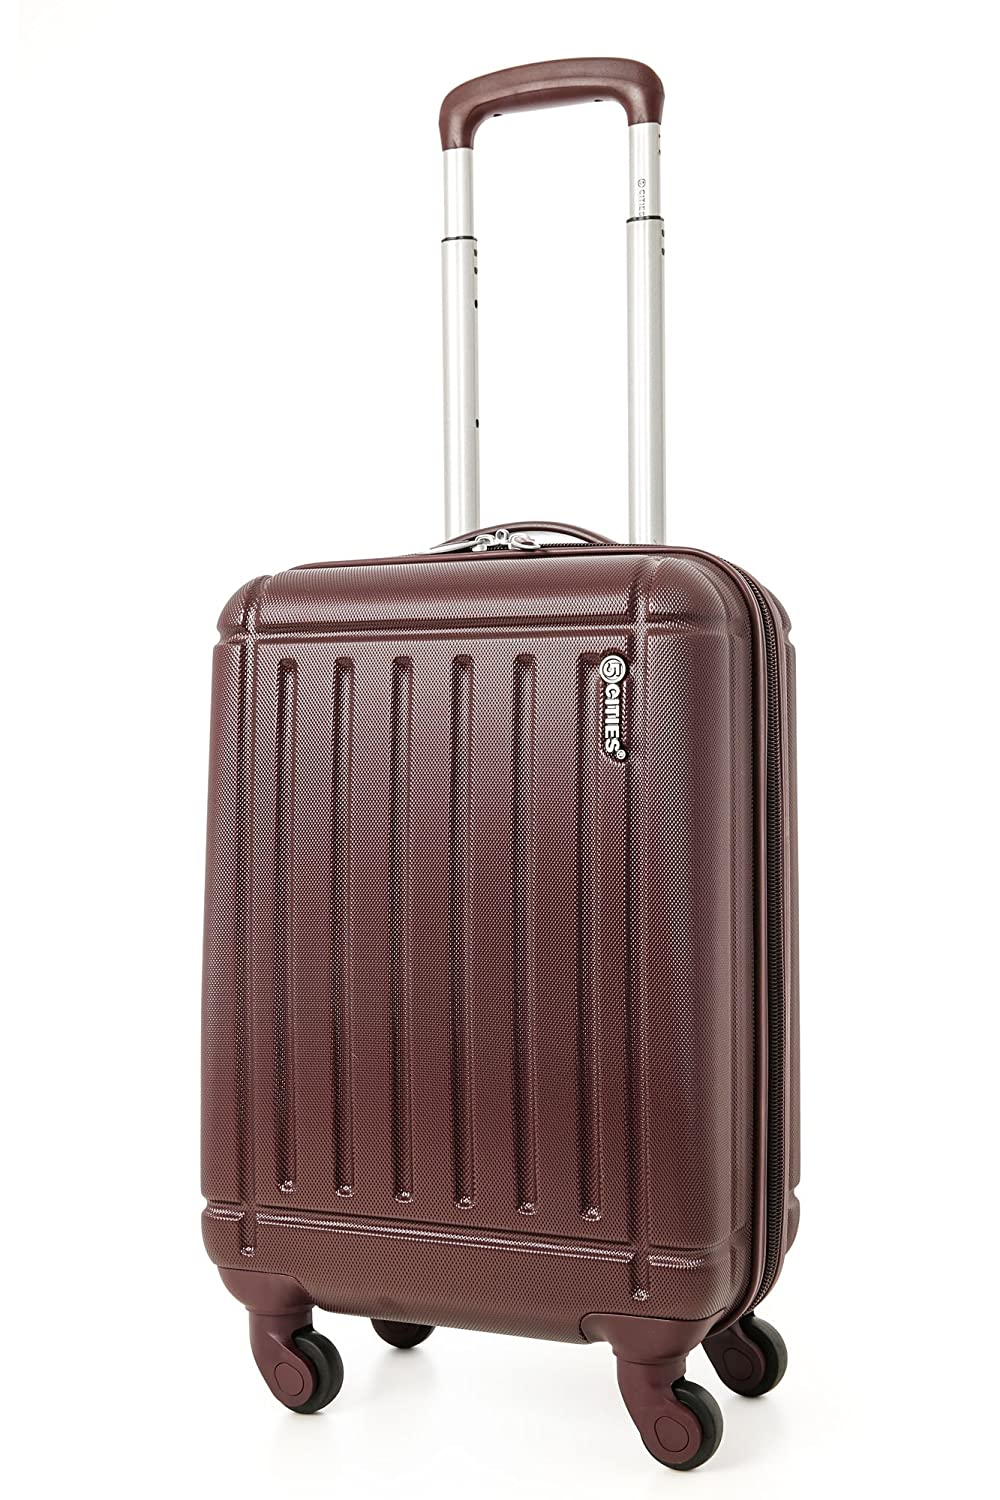 5 Cities Lightweight Abs Hard Shell Cabin Suitcase Approve for Ryanair Easyjet British Airways and More ABS105 Black 21 Hand Luggage, 55 cm, 32.0 L, Black